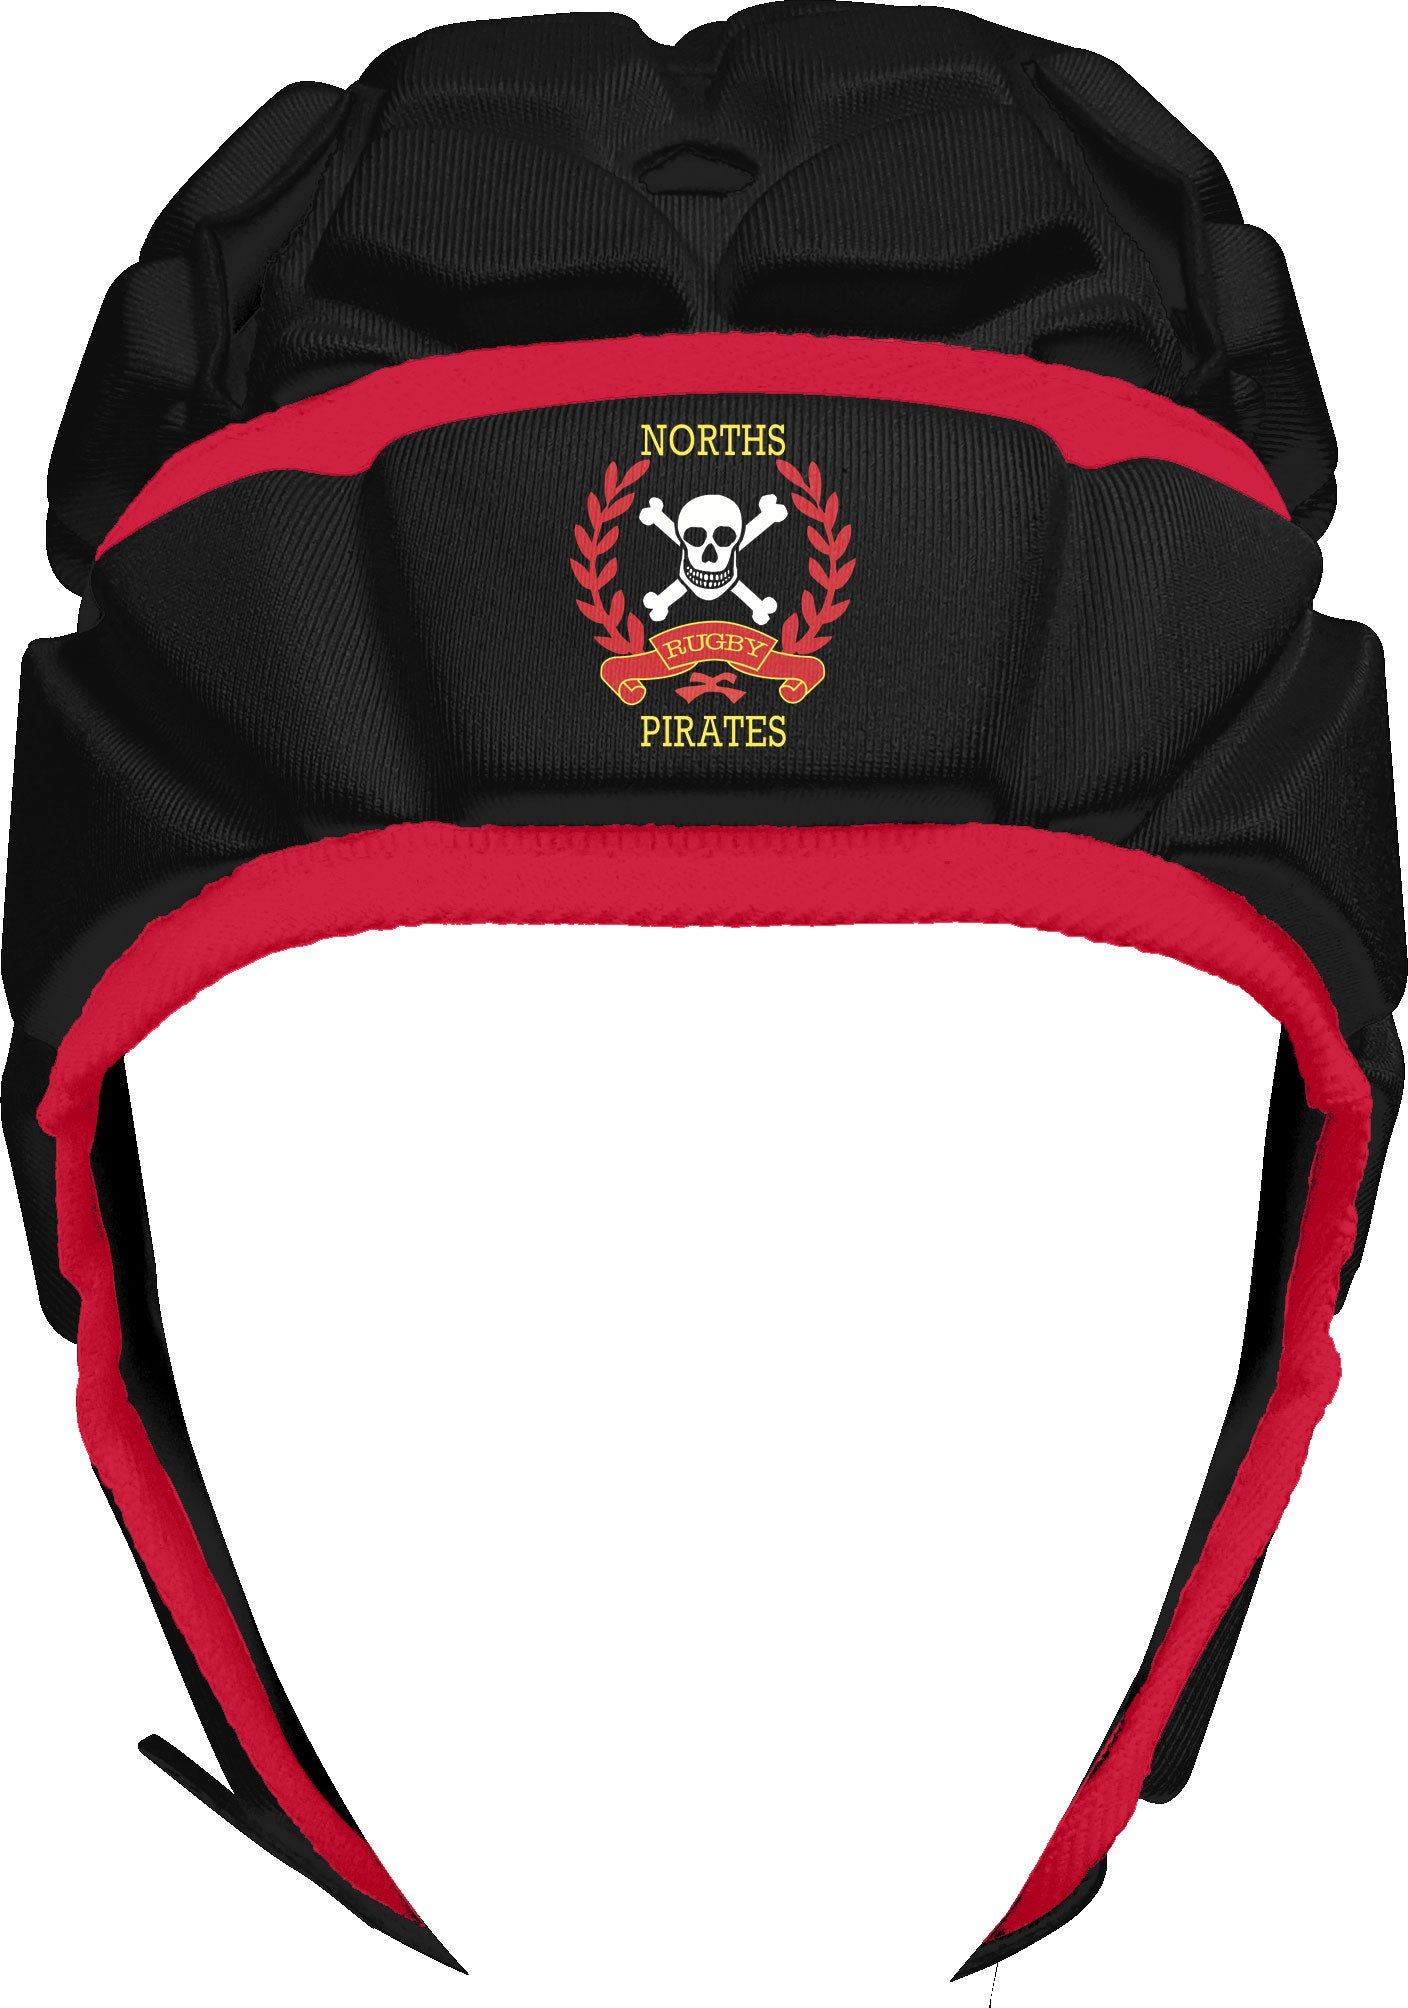 Norths Pirates Headgear